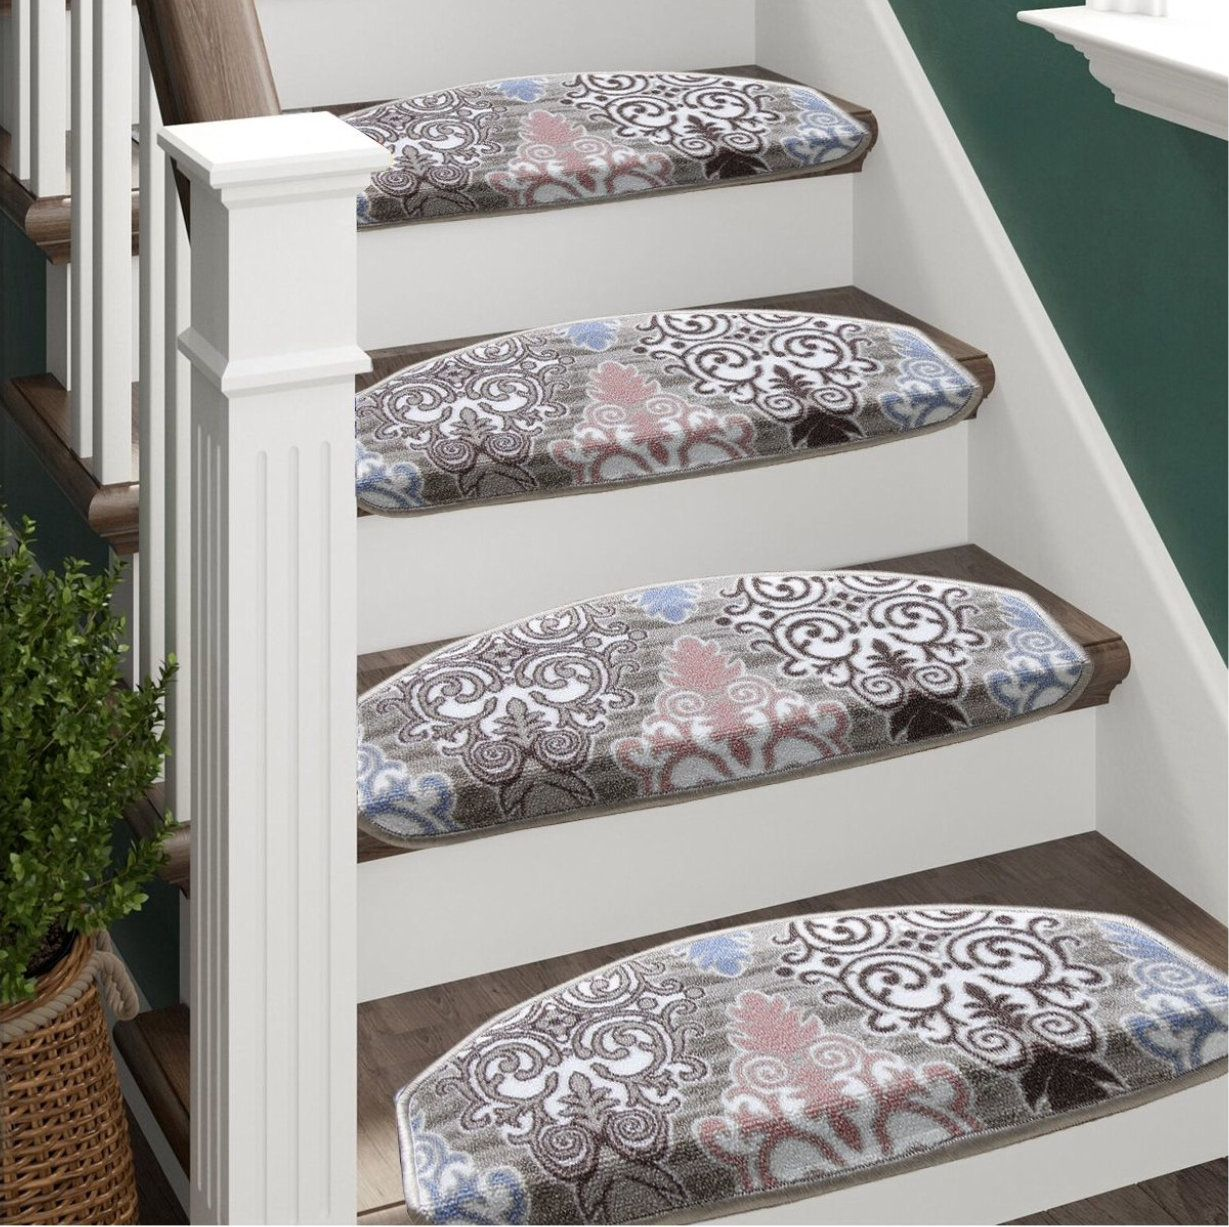 Best Staircase Rung Carpet Colorful Carpet Padded Carpet 400 x 300